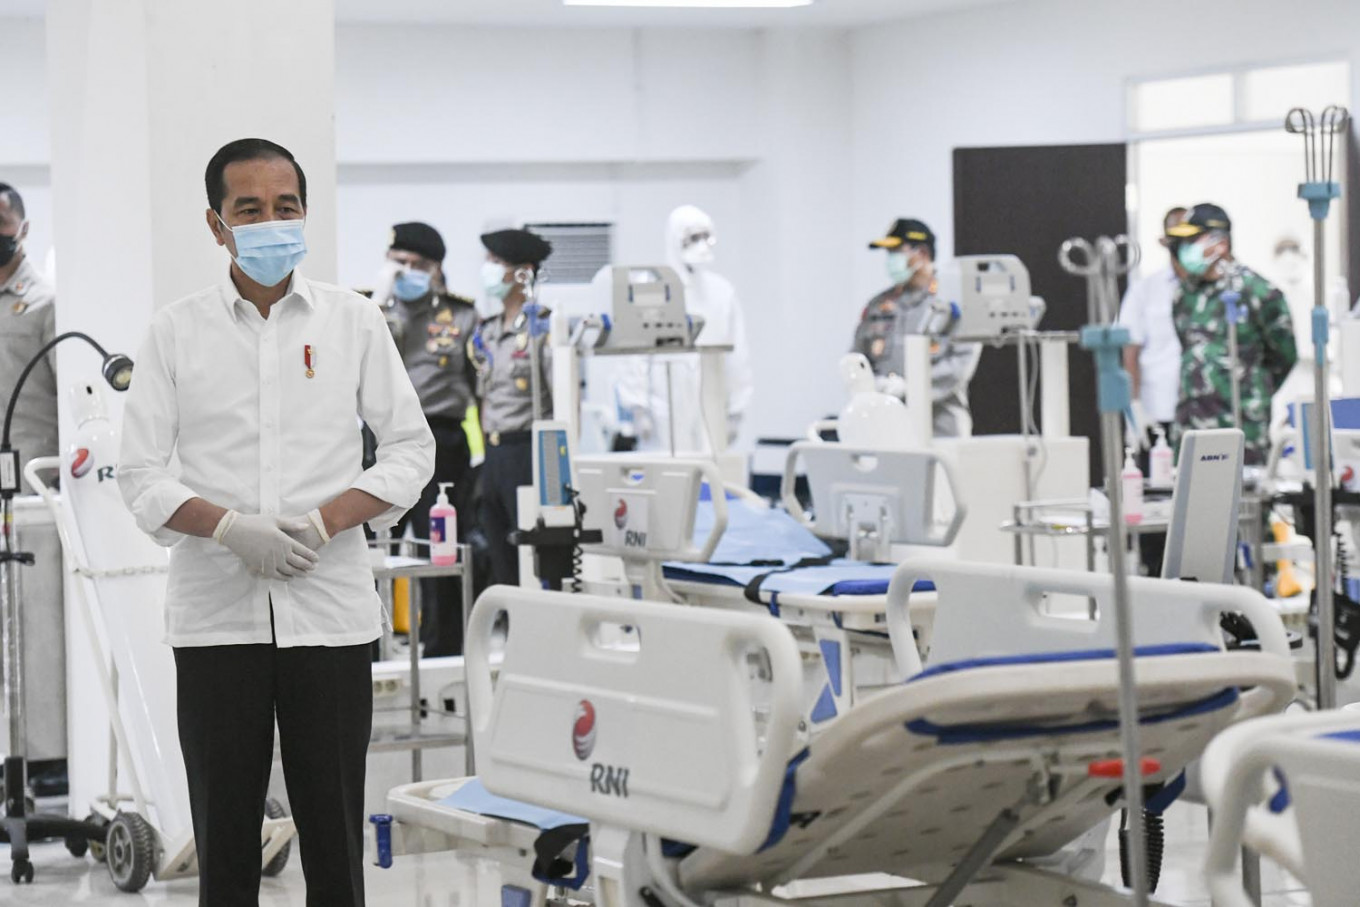 Jokowi mourns medical workers who have fallen to COVID-19